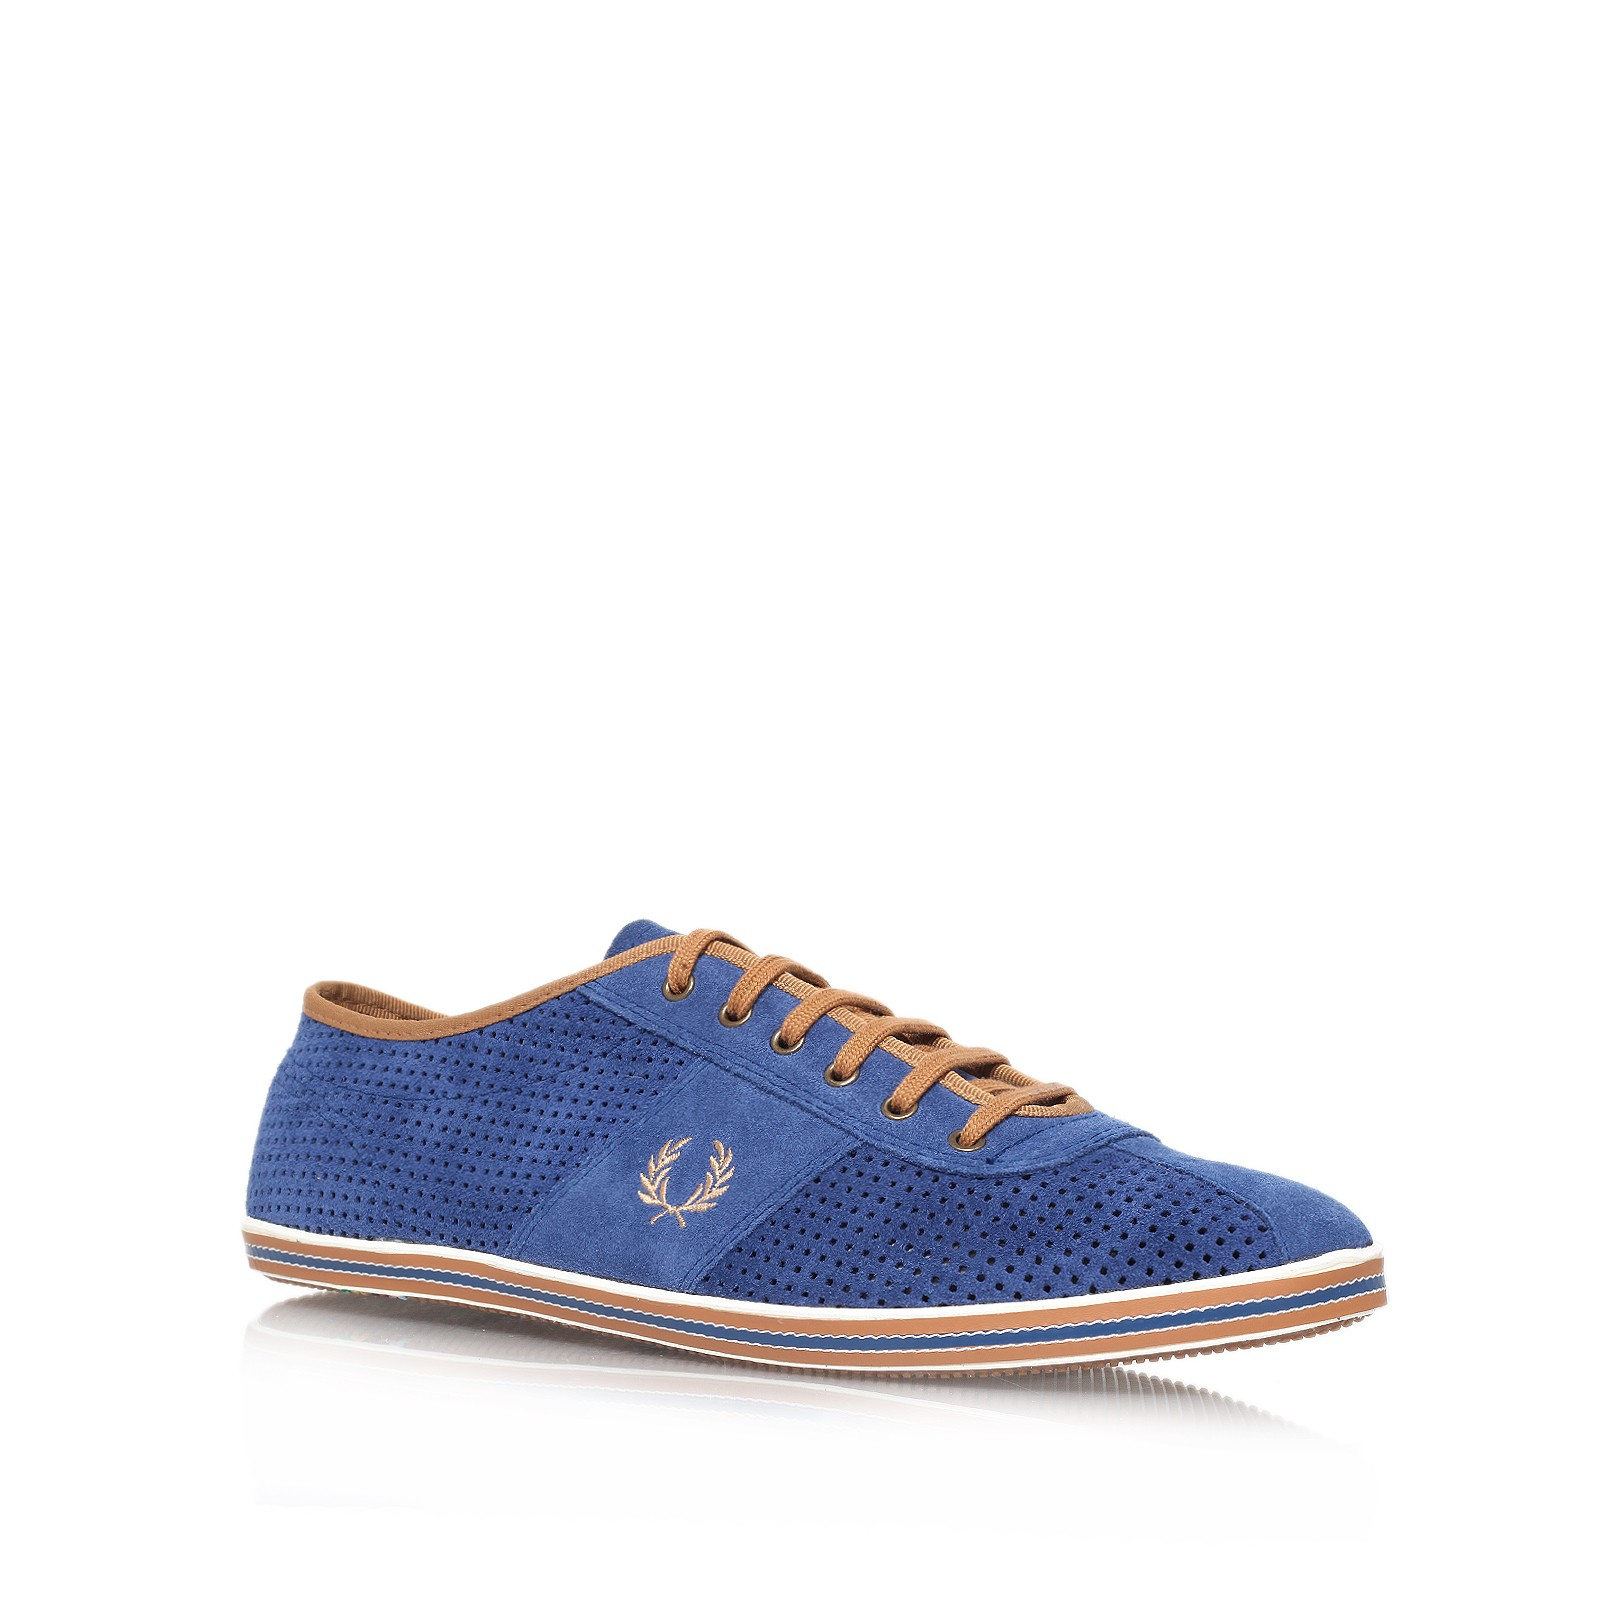 fred perry bw hayes sneaker in blue for men navy lyst. Black Bedroom Furniture Sets. Home Design Ideas